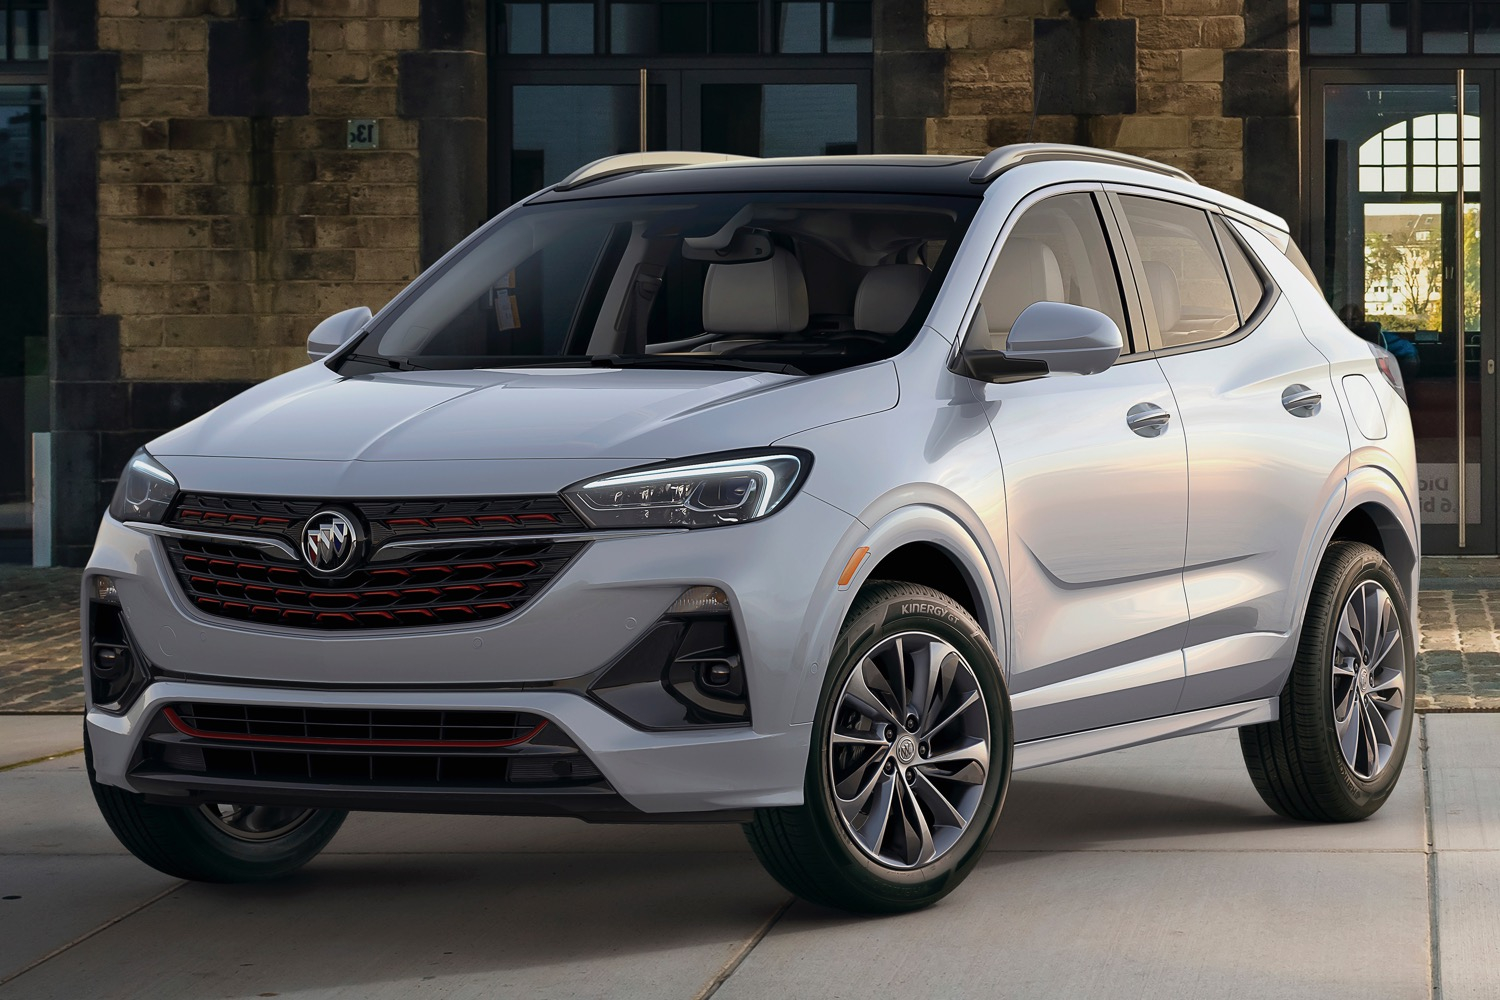 Buick Encore Gx: Check Out The Four Sets Of Factory Wheels 2022 Buick Encore Accessories, All Wheel Drive, Build